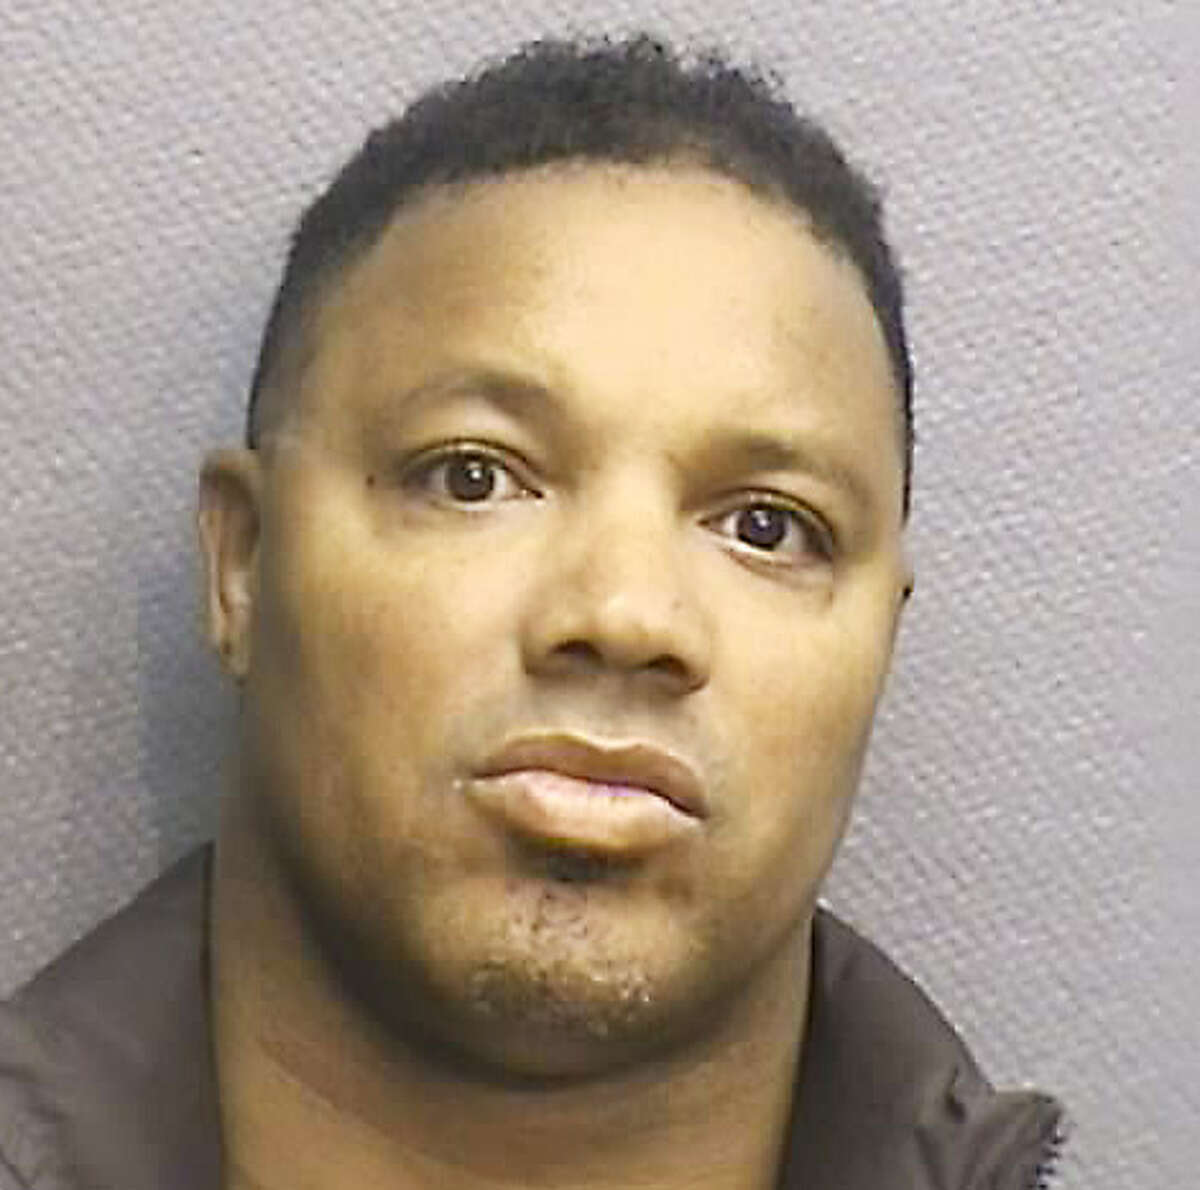 Keith Edward Grimmett, 49, was arrested and charged with aggravated assault.